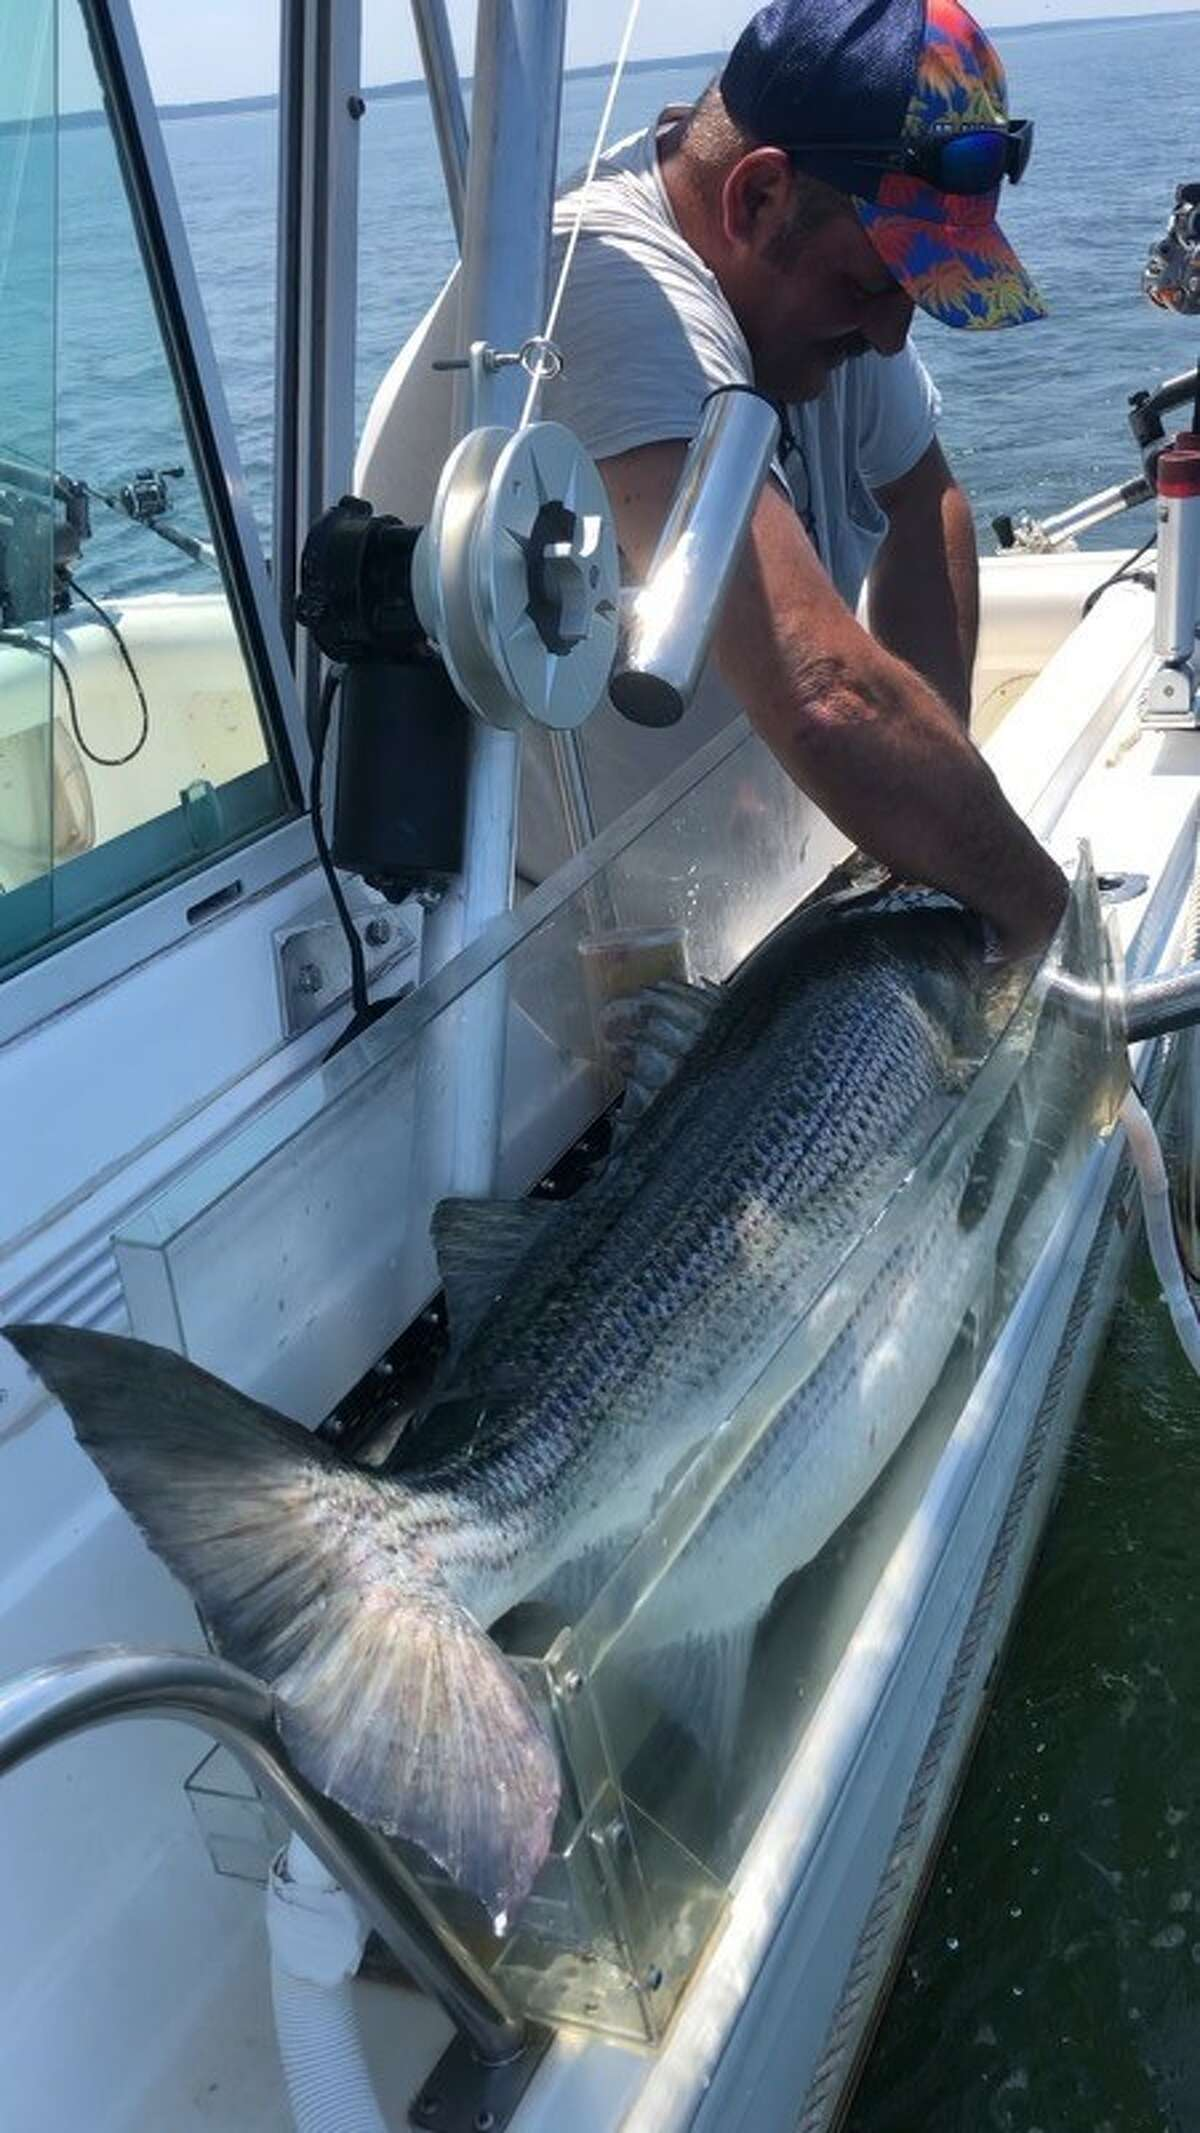 """Fisherman John Utter of Kingston hold his freshly caught 47-inch striped bass in the """"Re-Vive Well,"""" a Lexan fish-sized box that corrals the fish, holding it facing into a pumped flow of oxygenated water surging directly into its mouth and across its gills supplying the much needed oxygen for quick recovery and release."""